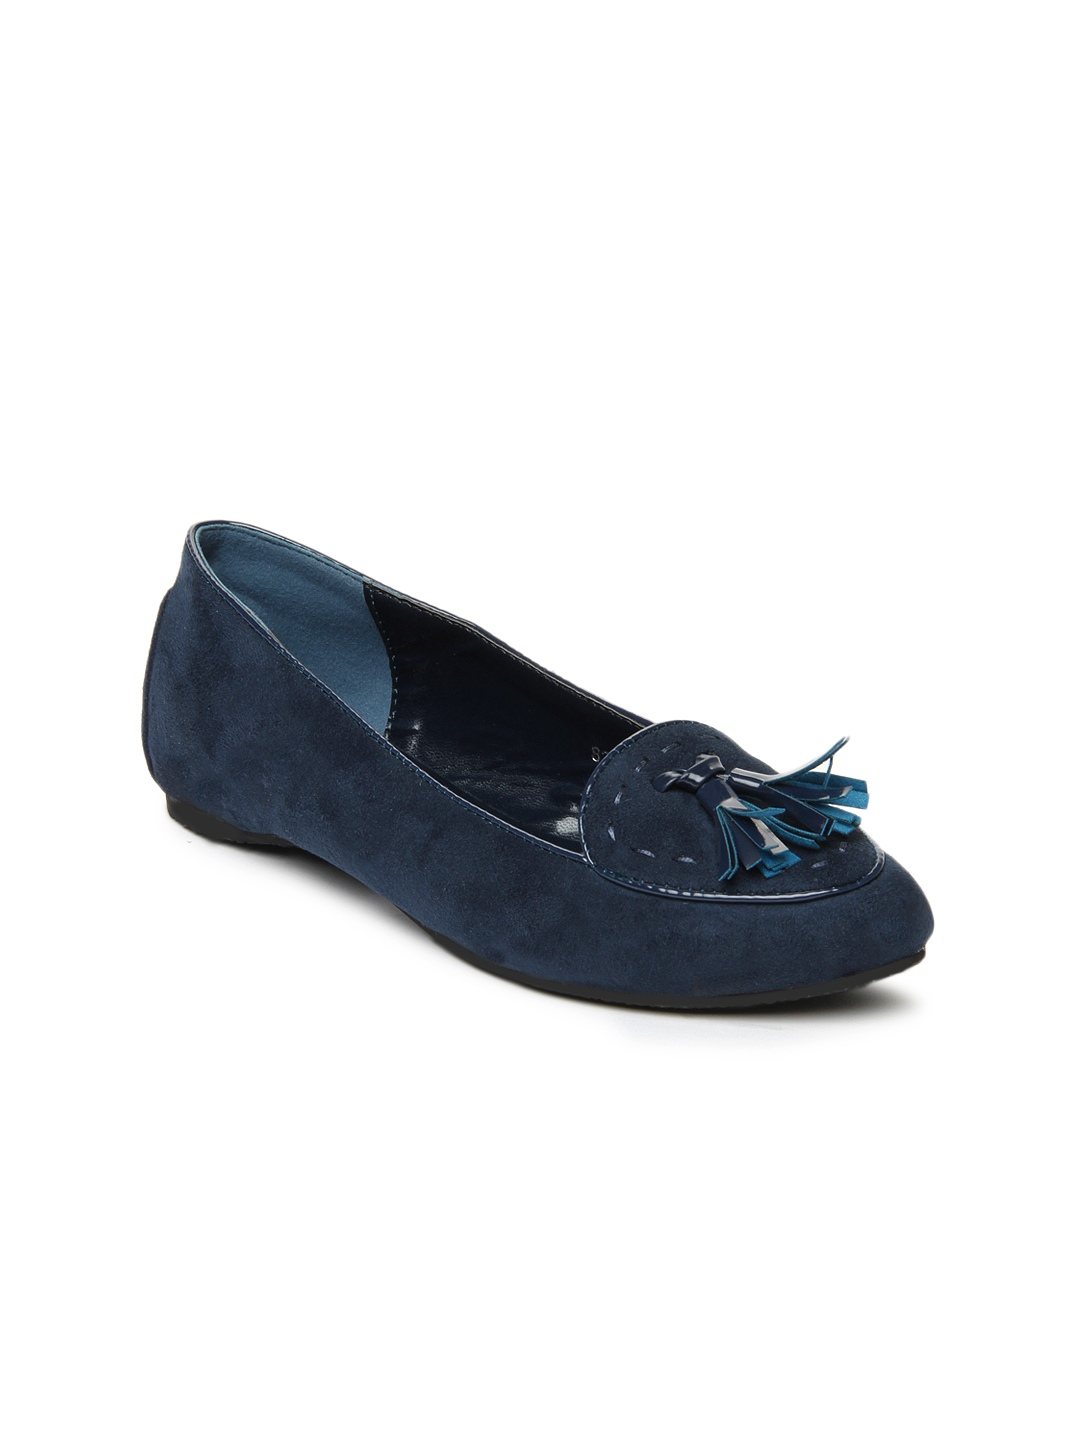 Shop for women's flat heel shoes at coolzloadwok.ga Next day delivery and free returns available. s of products online. Buy women's flat heel shoes now!